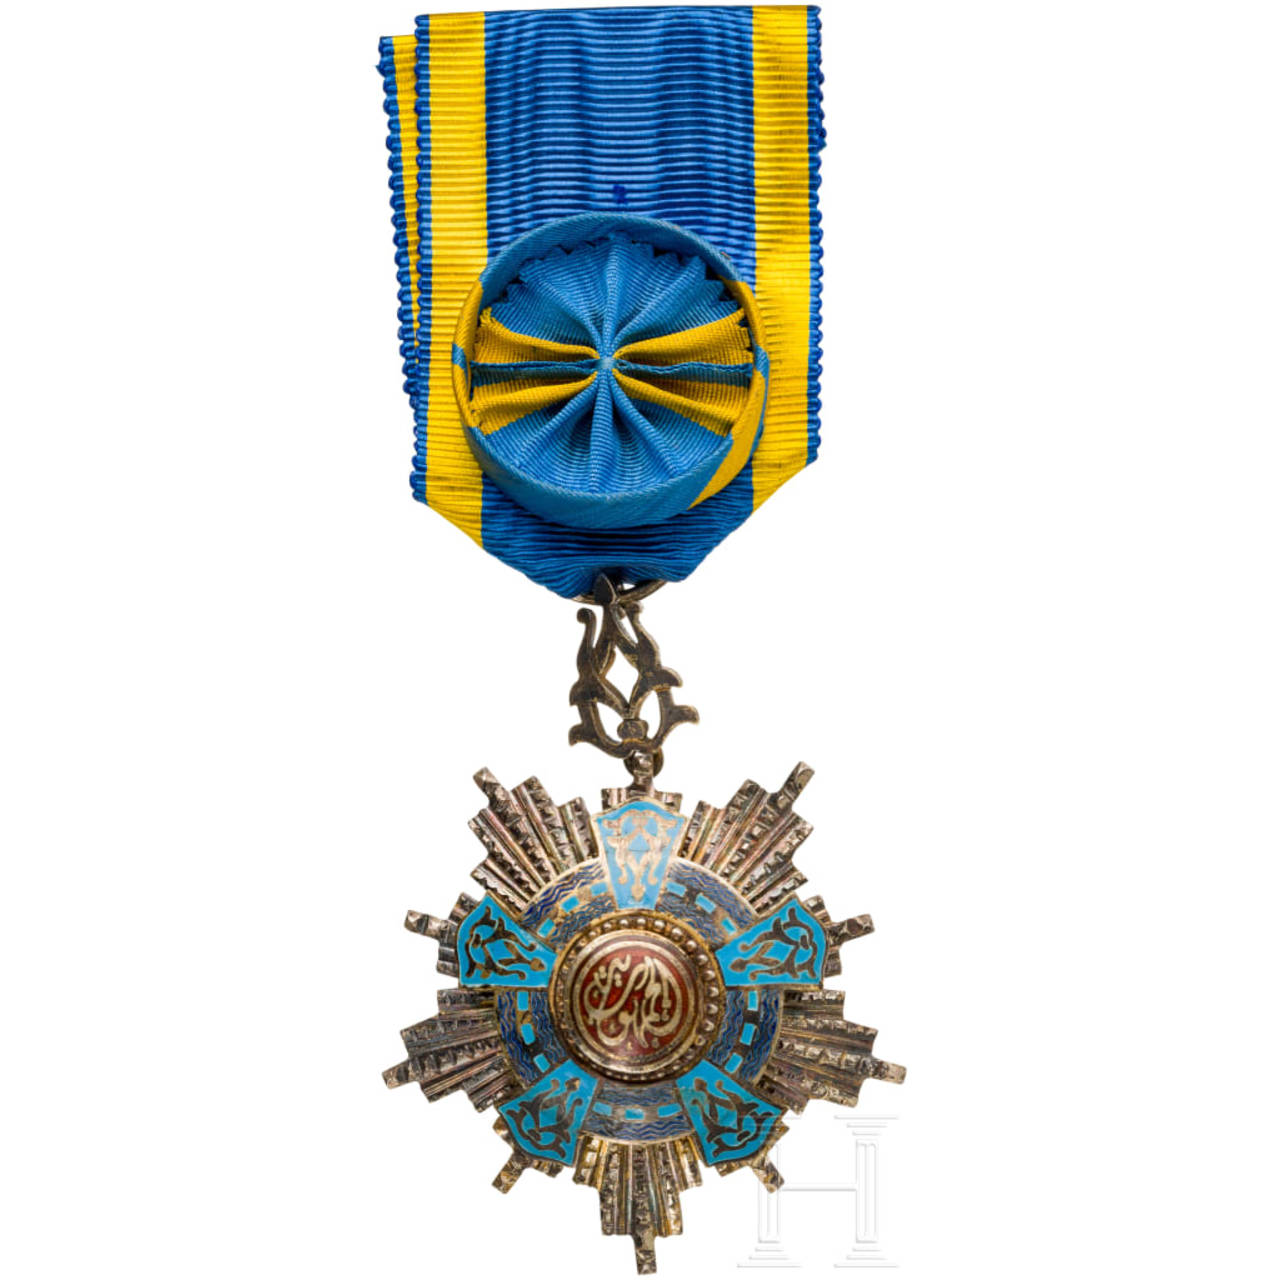 Egypt - an Order of the Republic, 1st model